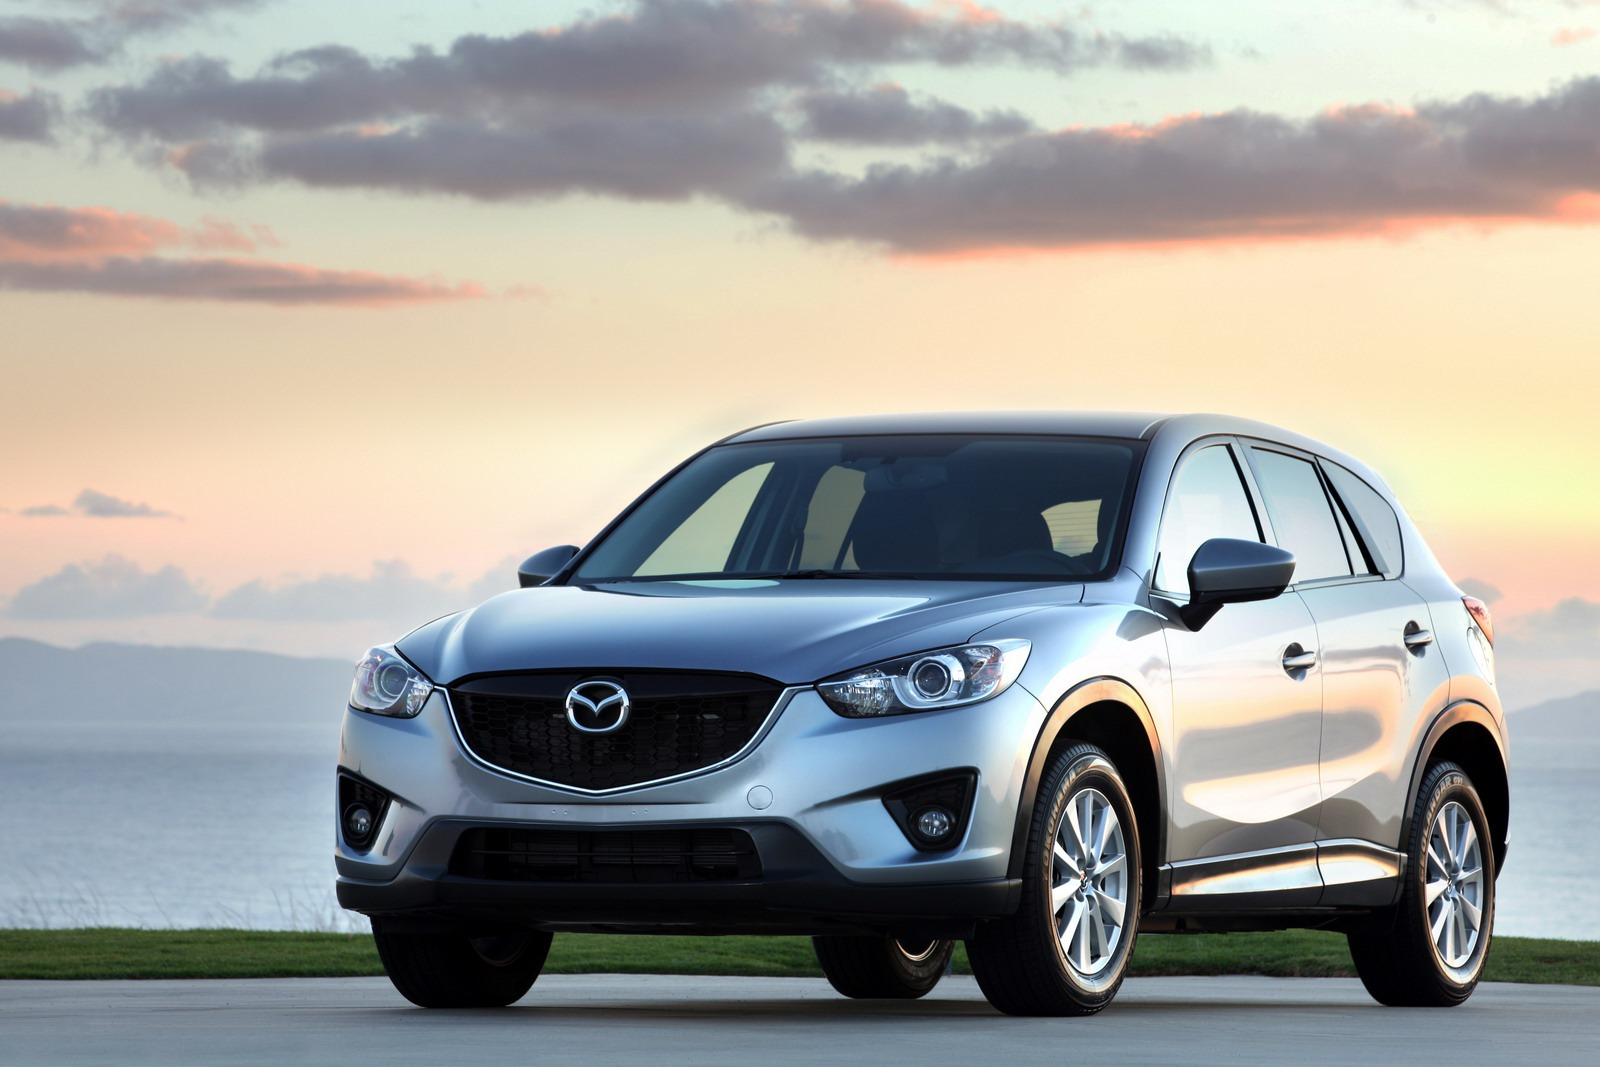 2013 Mazda CX 5 Crossover 2013 Mazda CX 5 Crossover   Available with a Compact Technical Tune up